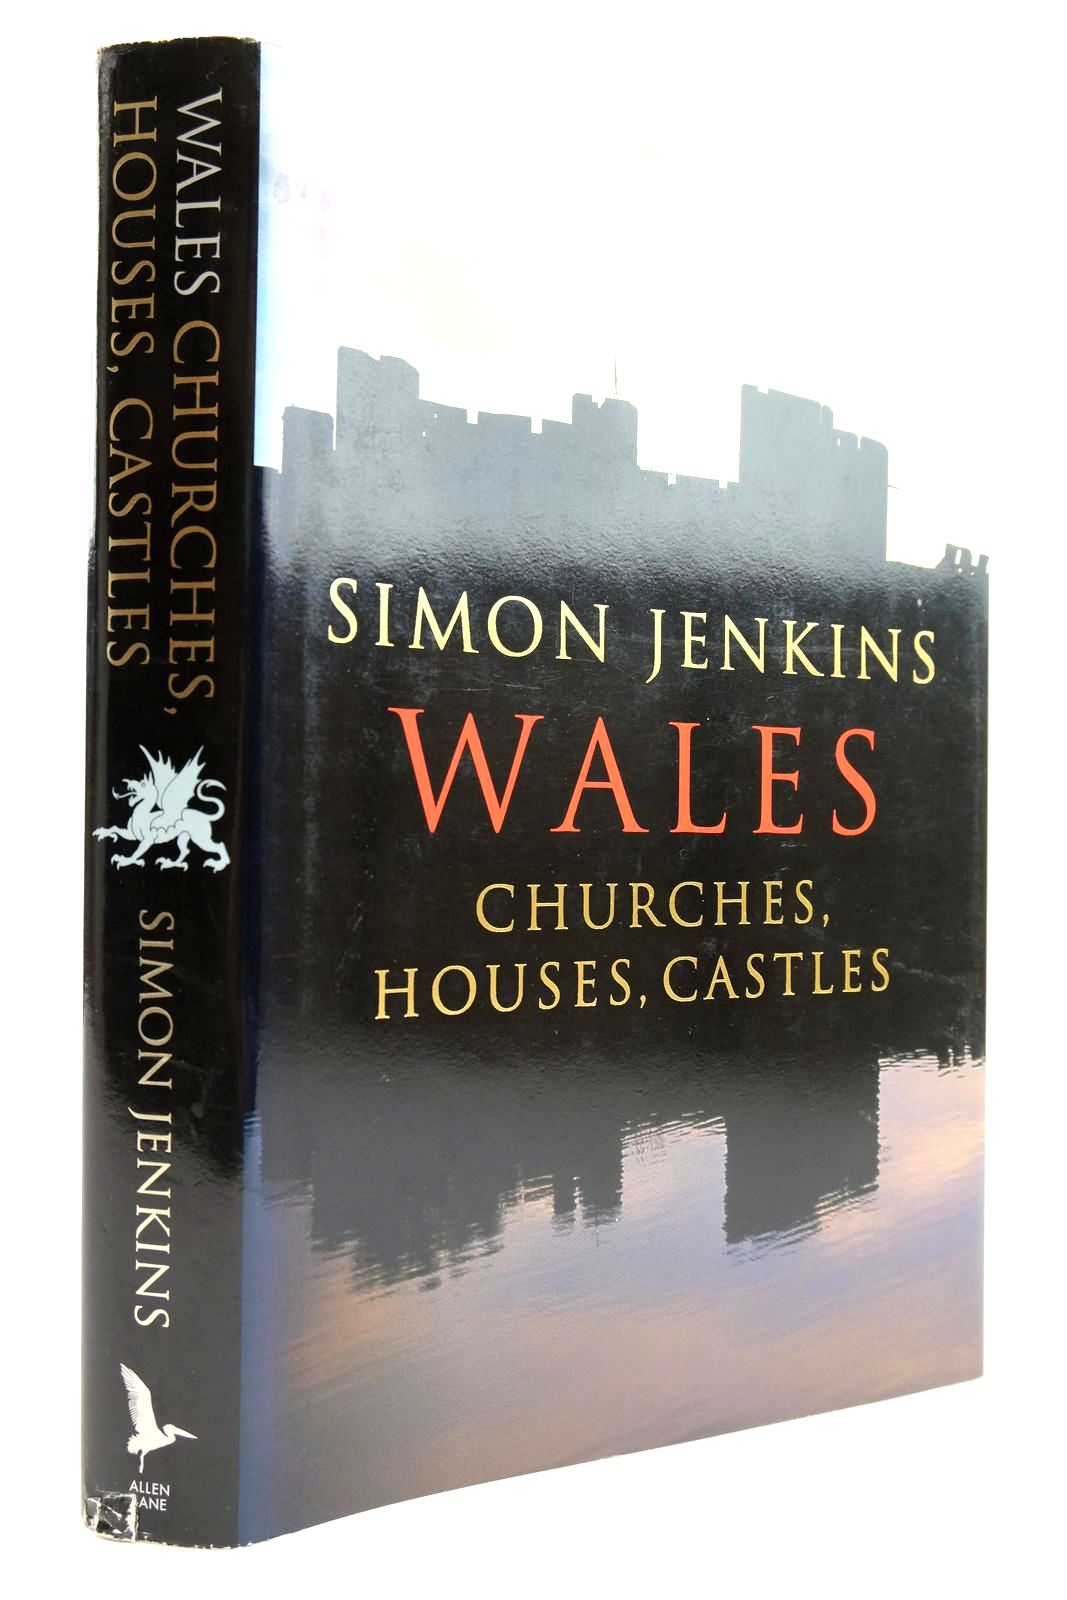 Wales Churches, Houses, Castles